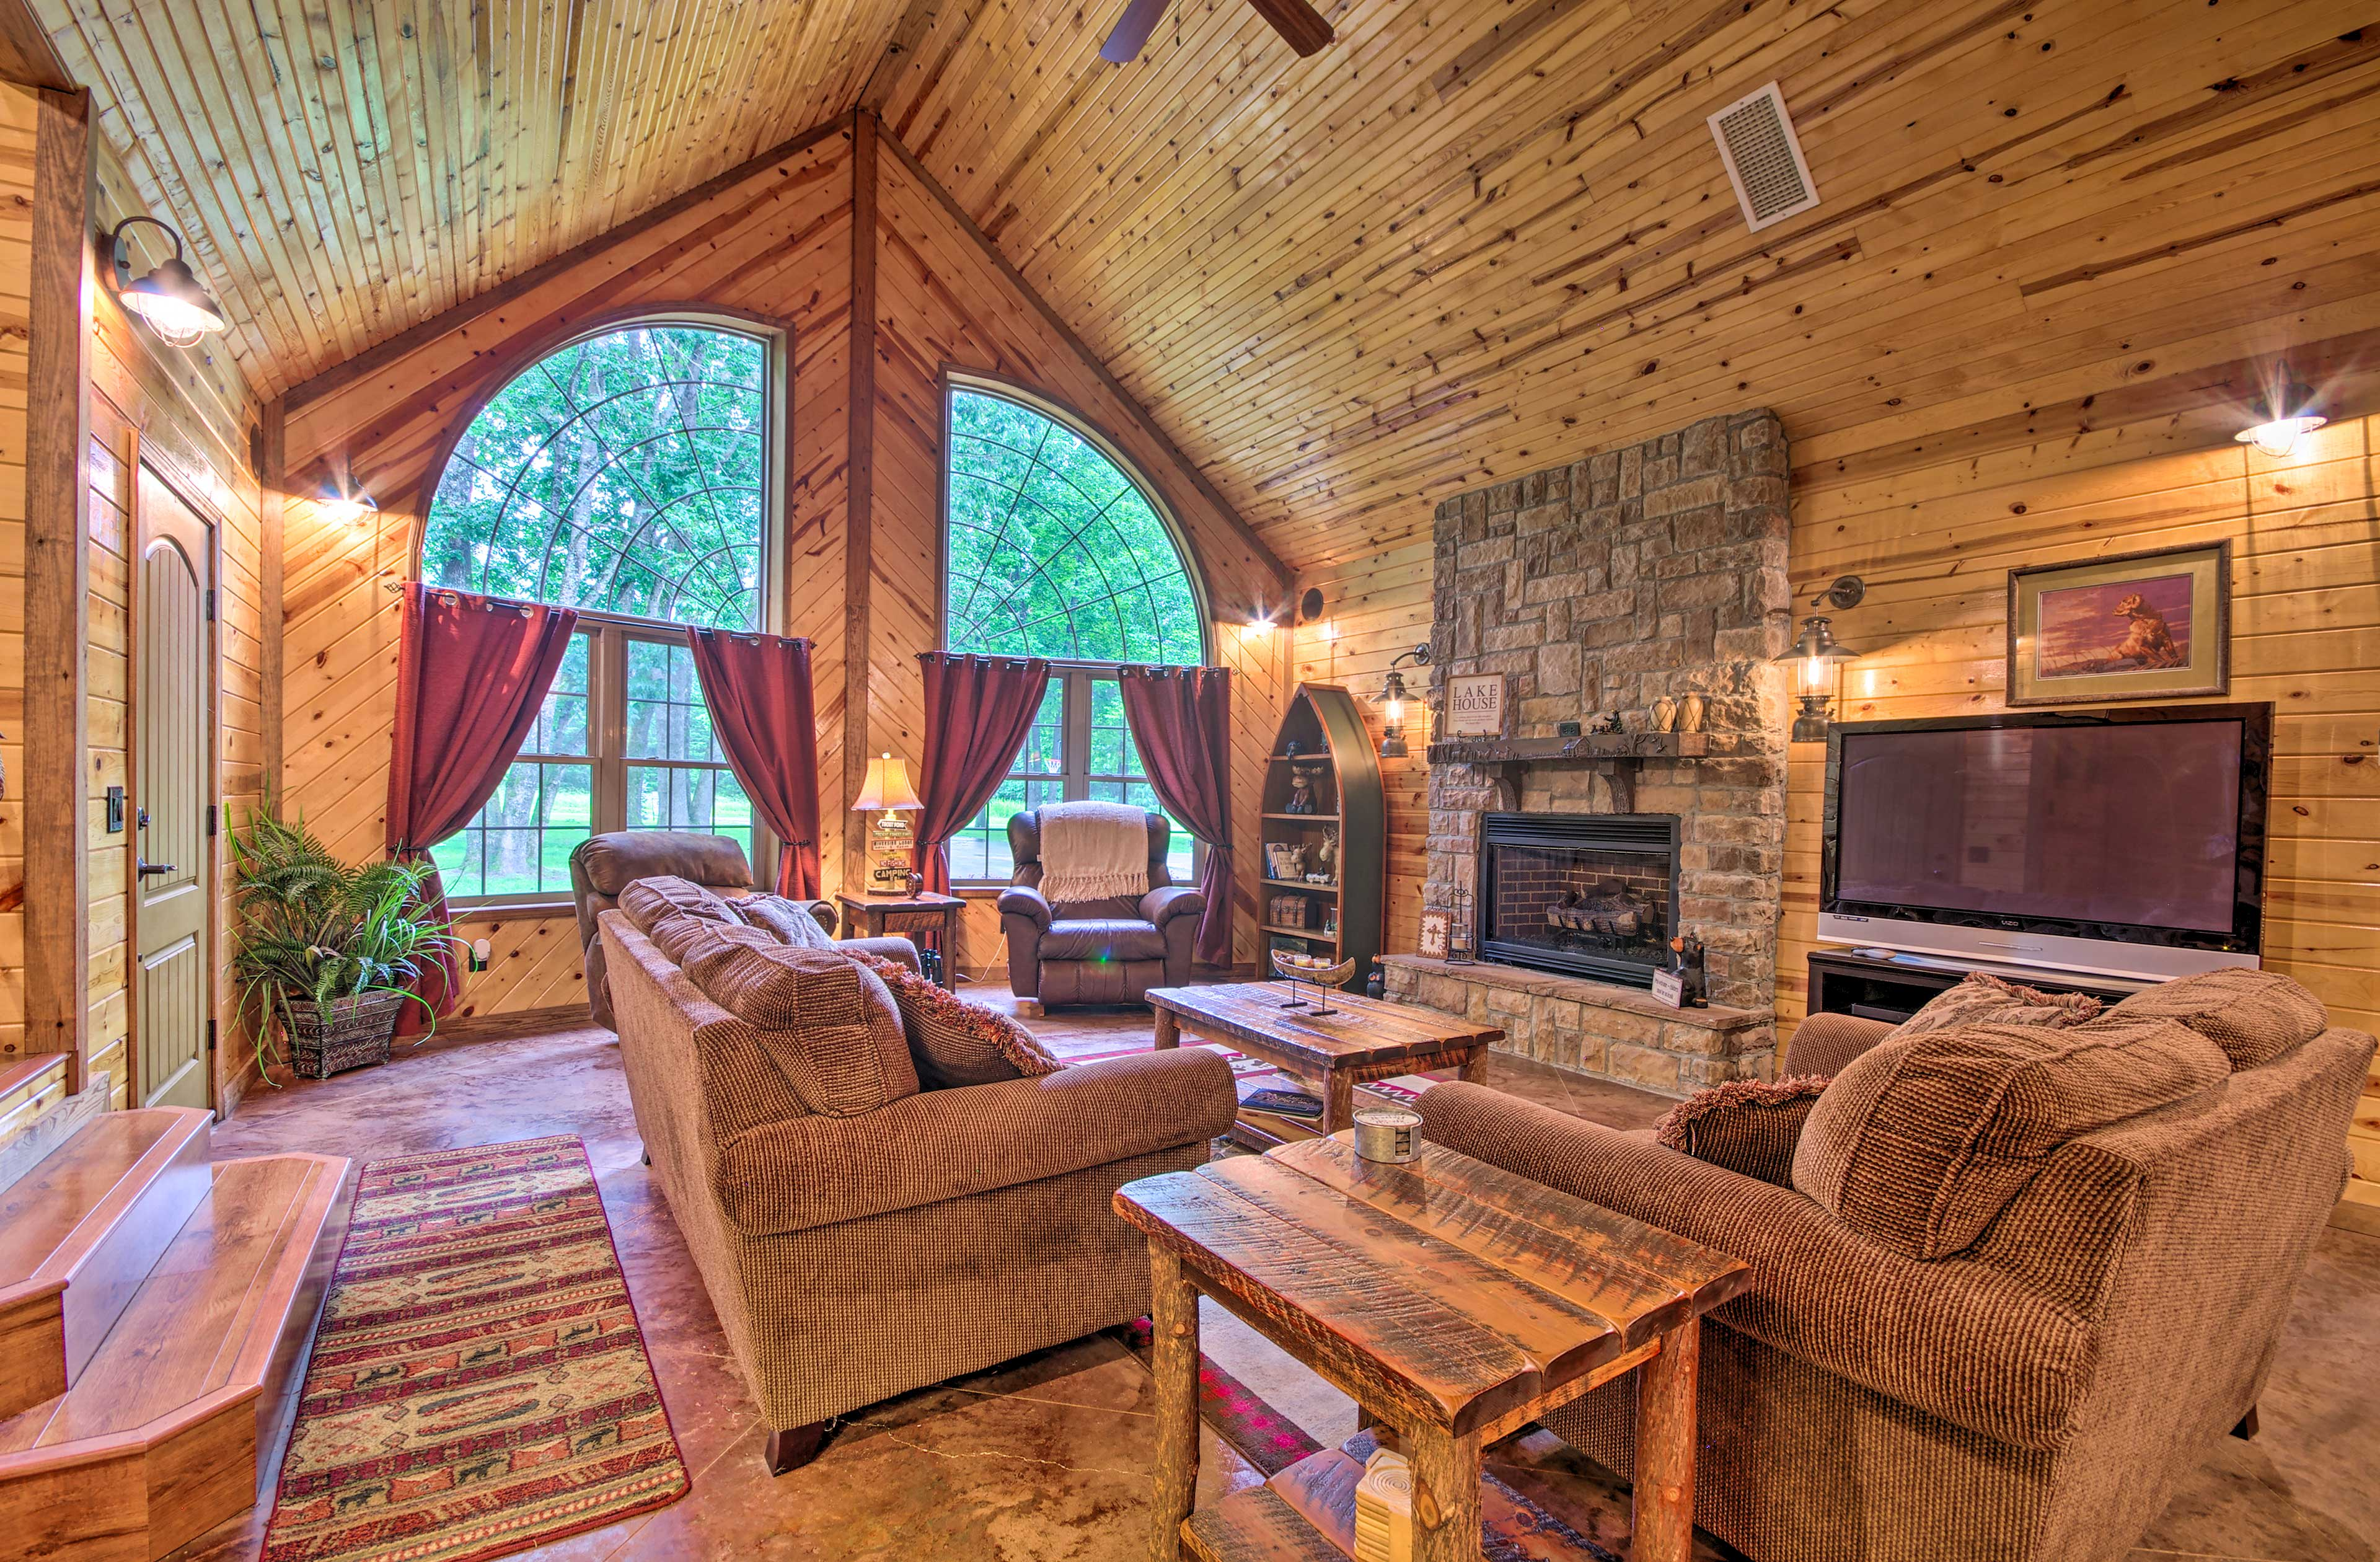 Bring the family to this Mountain Home vacation rental for a backcountry stay.